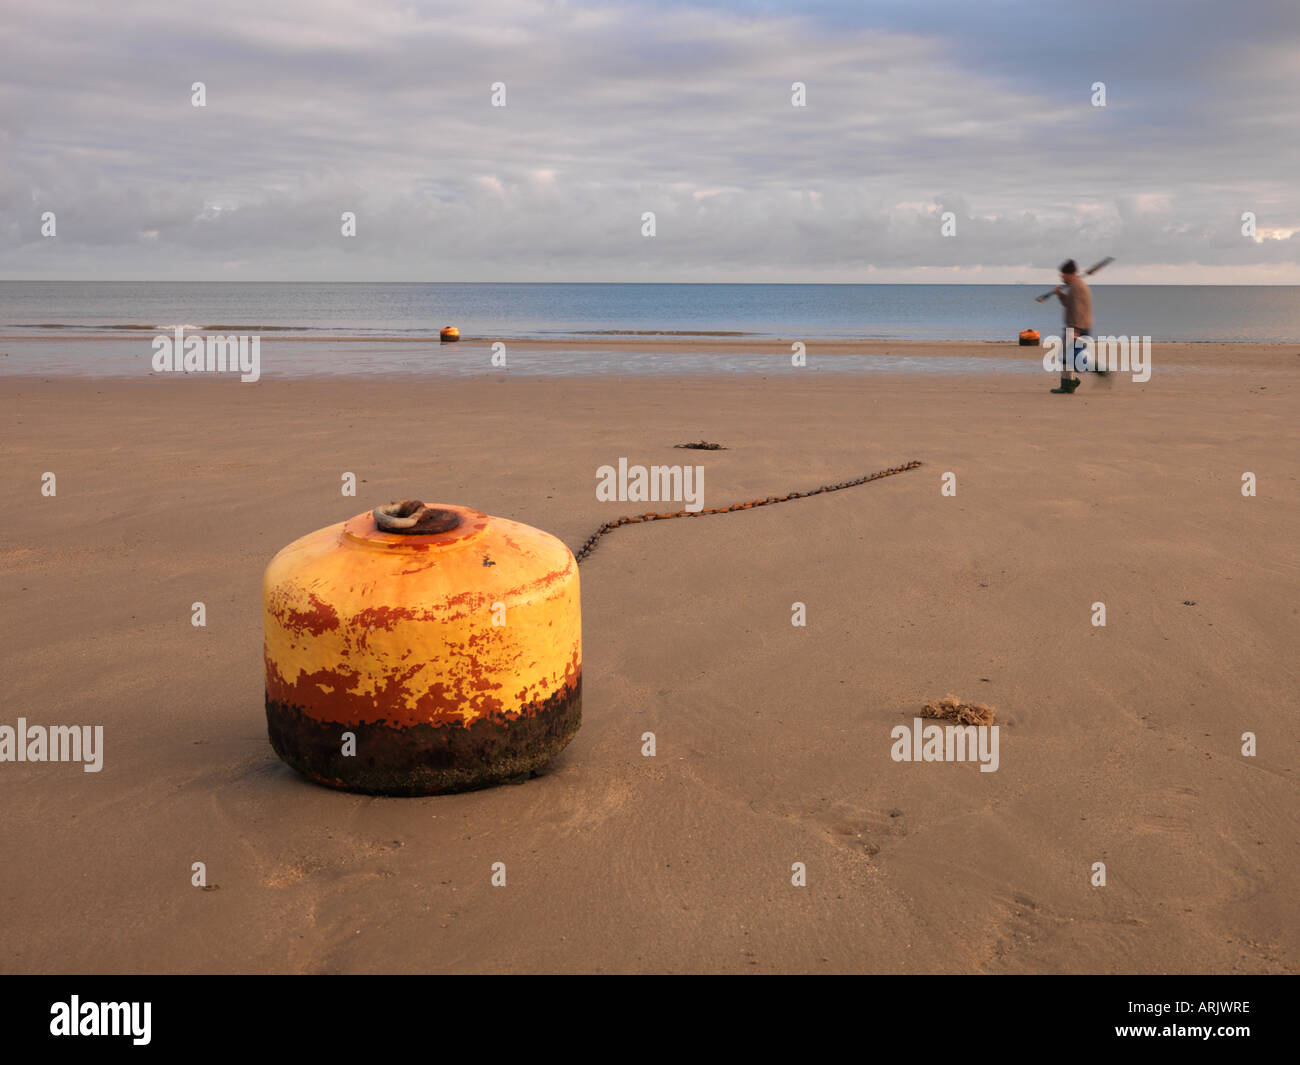 Man walking past buoy and chain on beach, Rhos-on-Sea, Wales, Summer 2006 - Stock Image